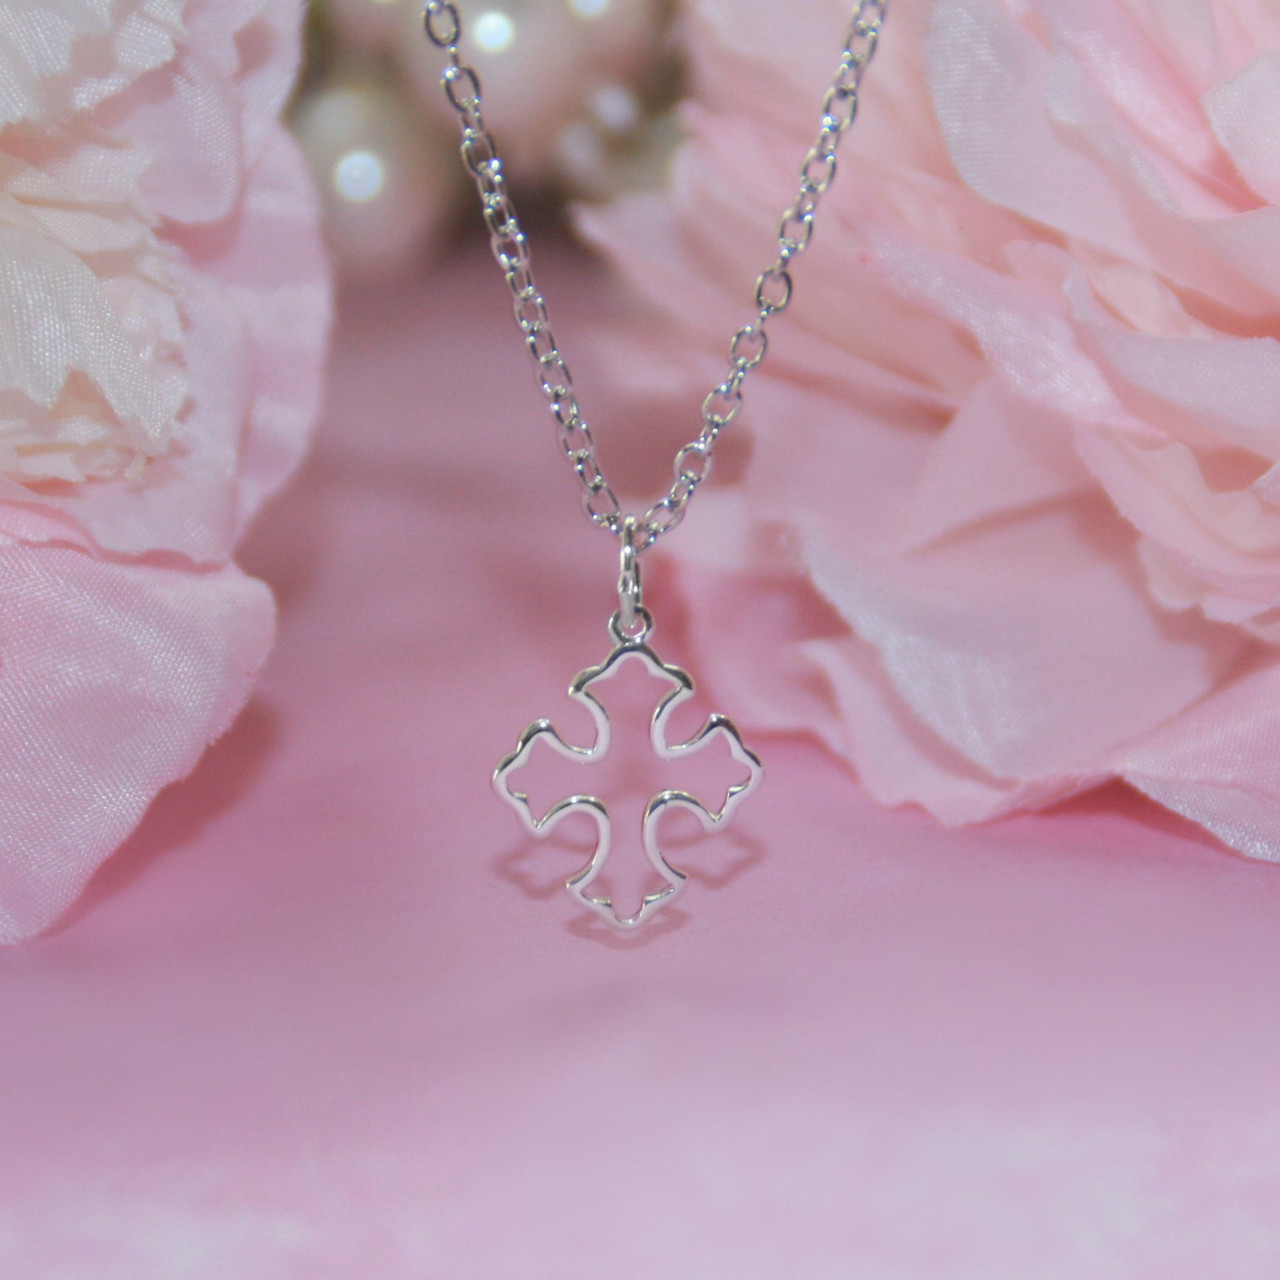 CJ-562  Oh so Sweetness Open Dainty Cross Necklace